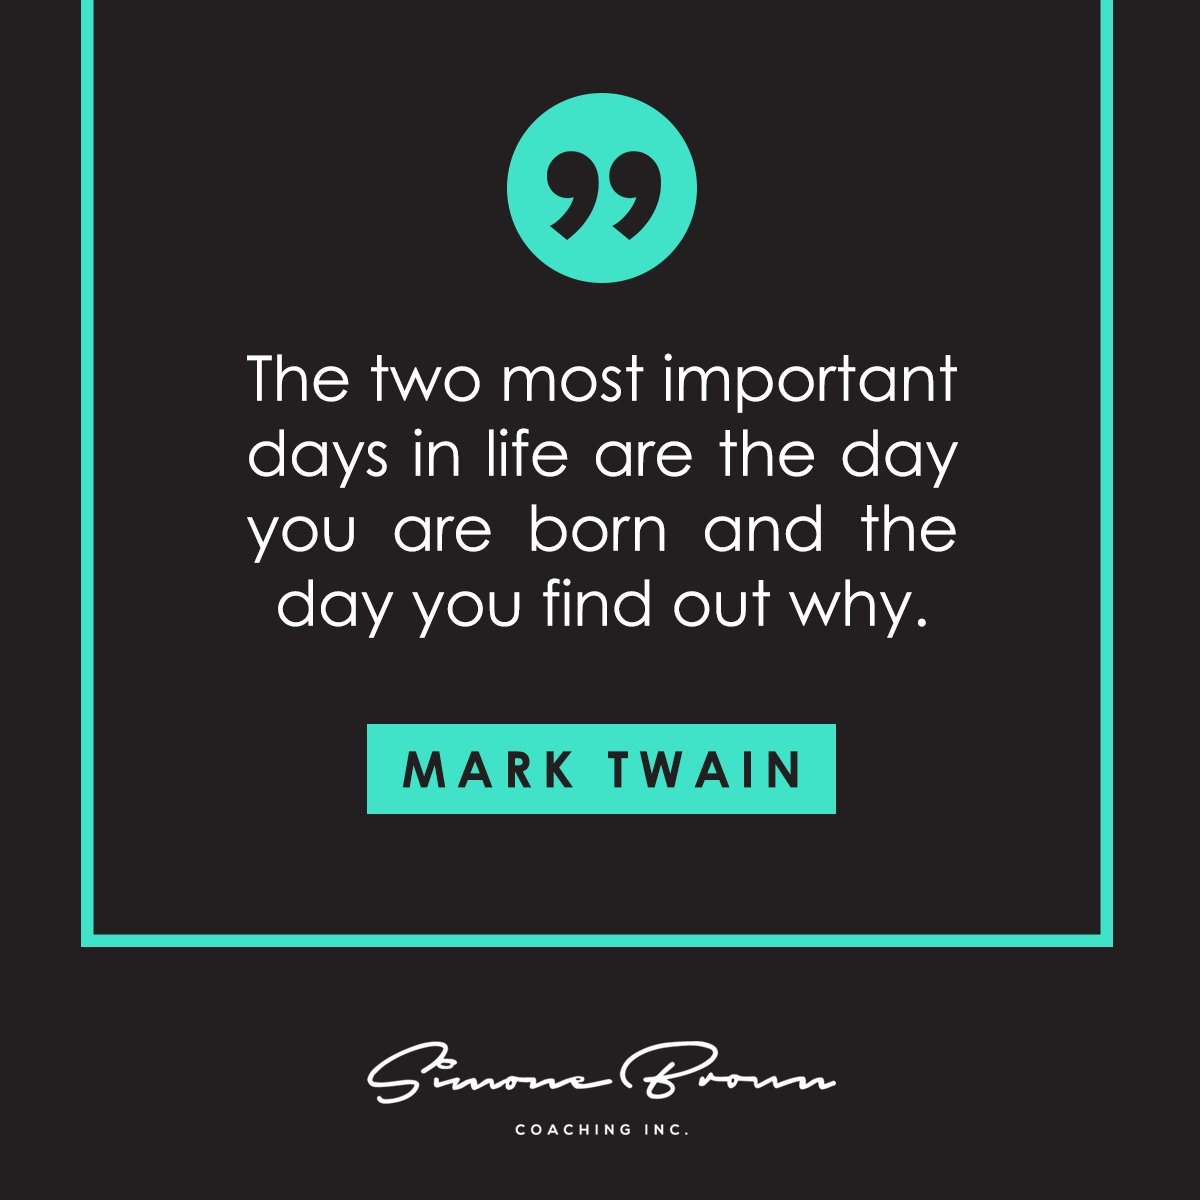 """""""The two most important days in life are the day you are born and the day you find out why."""" Mark Twain"""